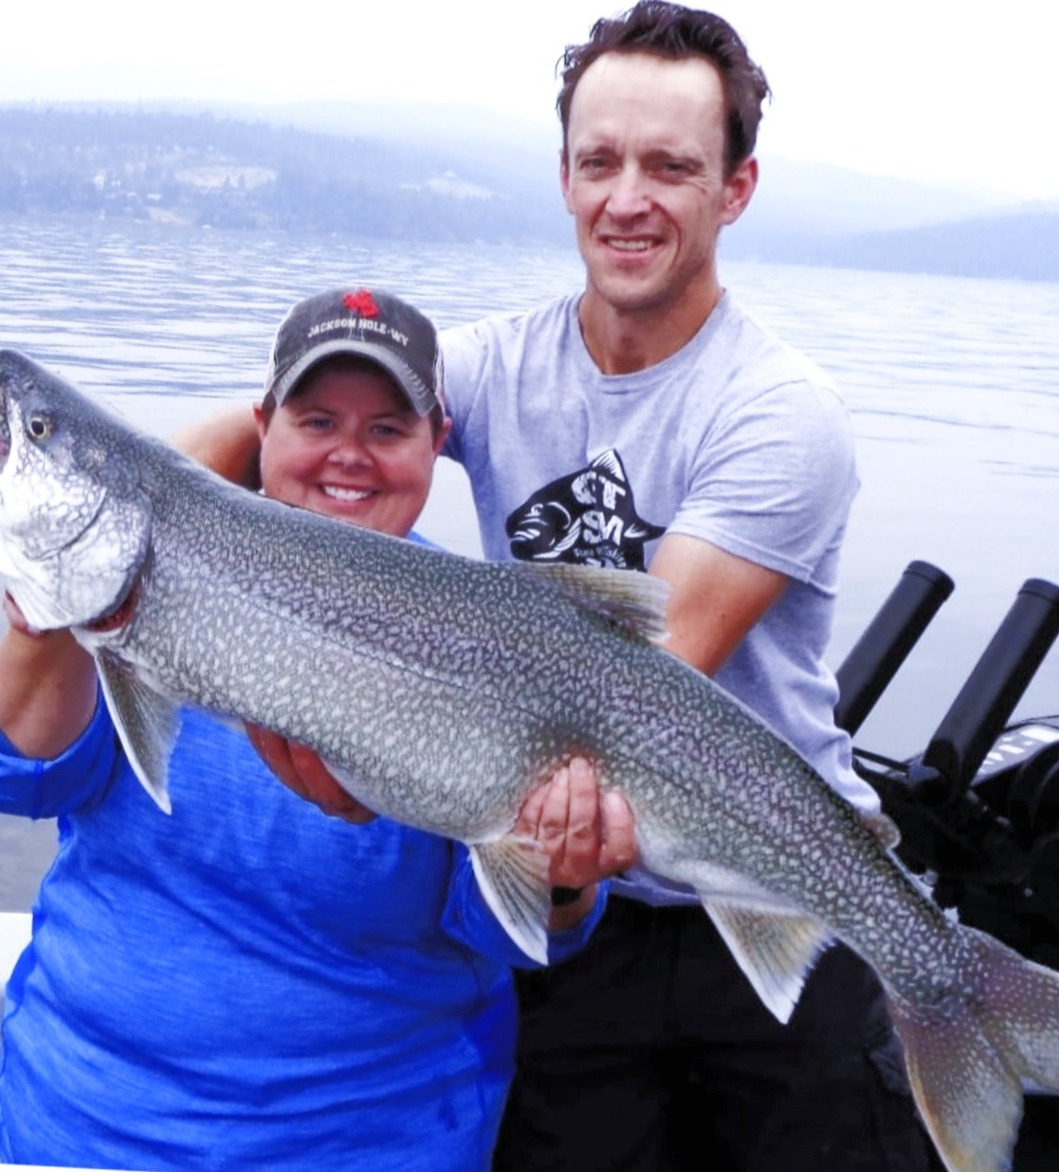 18 lb. Mack on Flathead Lake